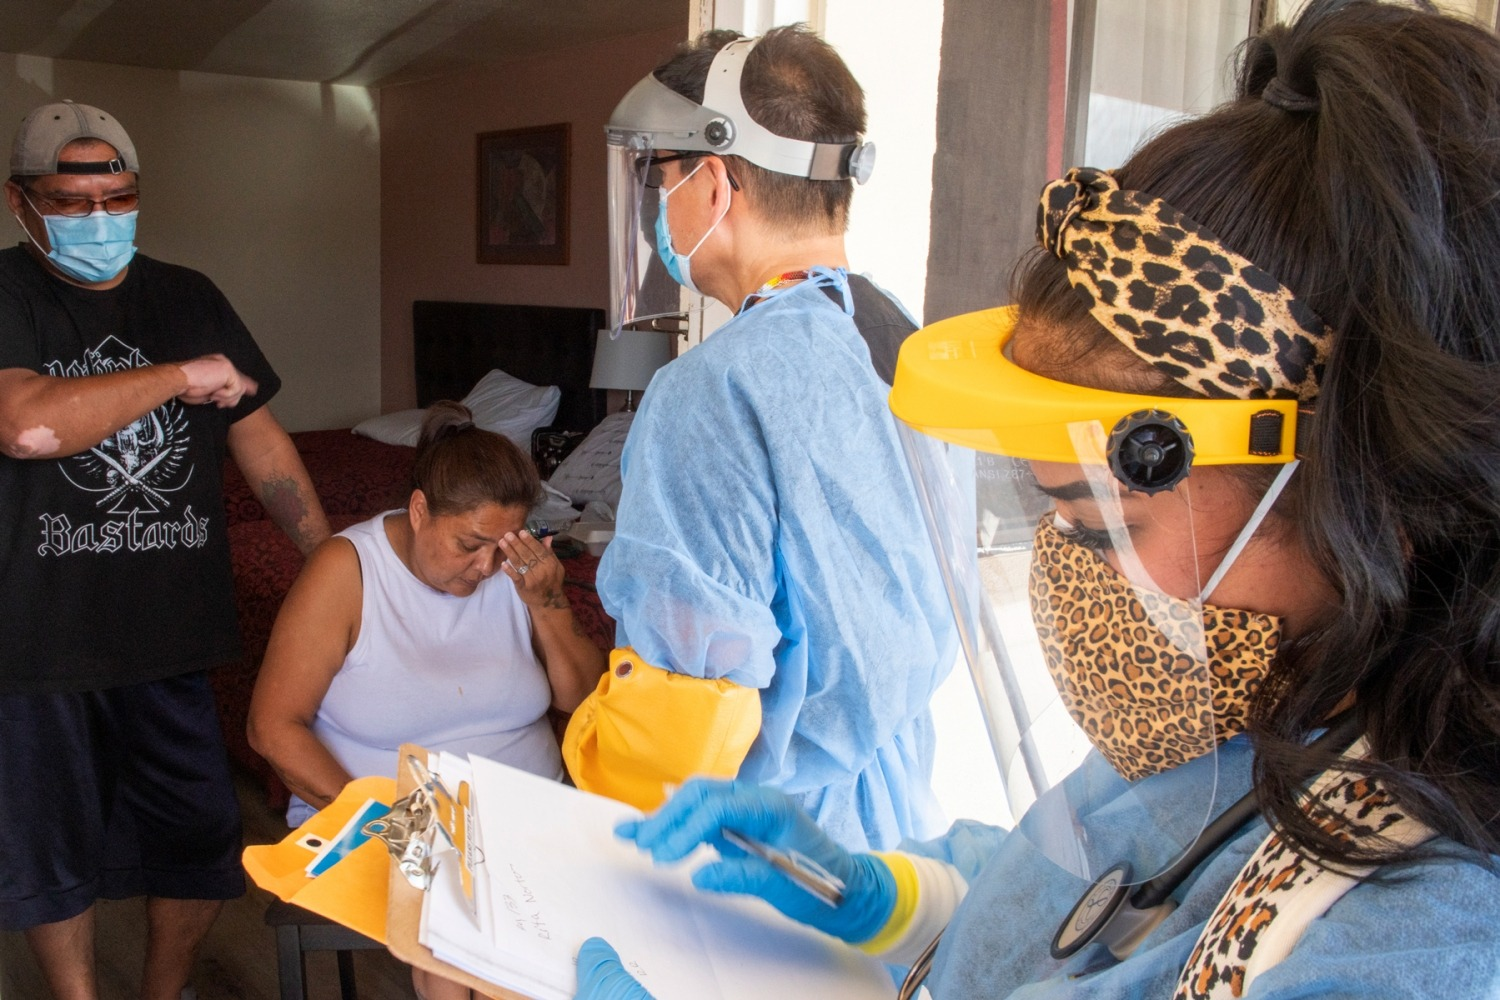 Dr. Caleb Lauber and Medical Assistant Shaniya Wood checking on Roger Bydone and Rita Norton, patients who may be COVID-19 positive, quarantined in a motel in Gallup.